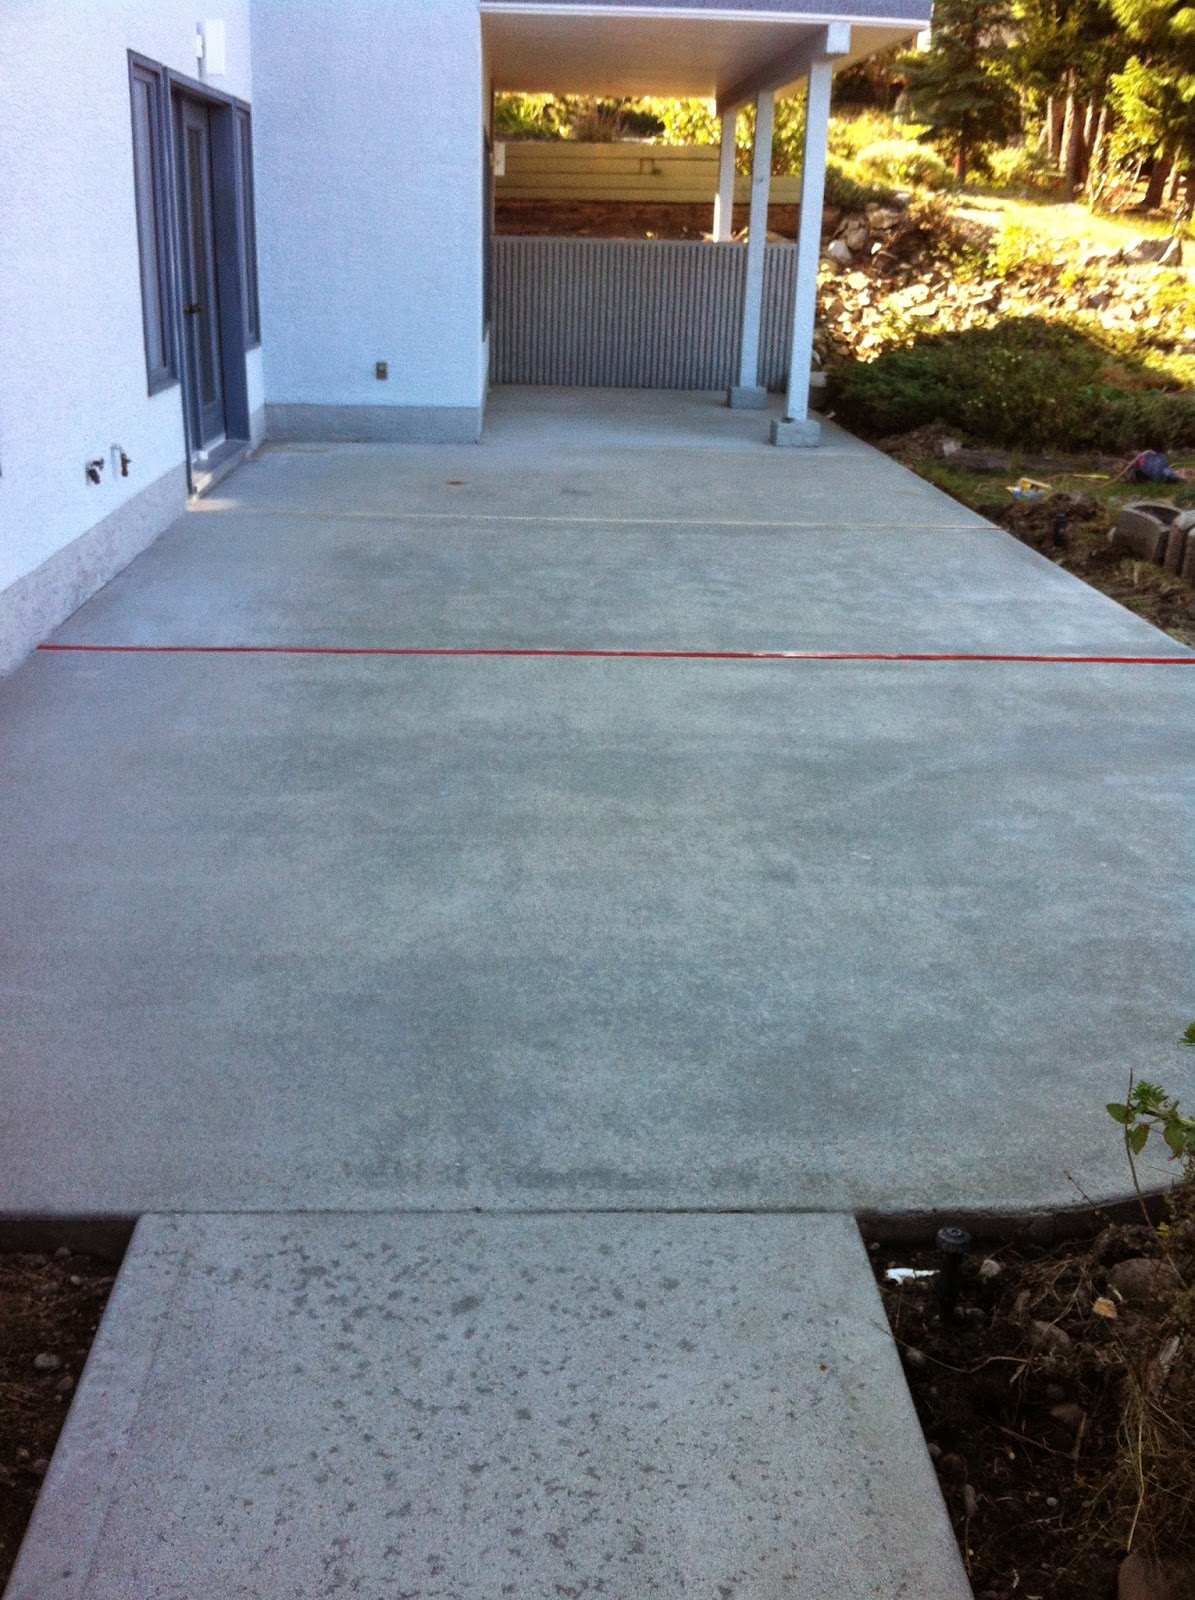 MODE CONCRETE: Give New Life To Your Concrete With Acid Stain   Concrete  Patio Completed By Kelowna BC, MODE CONCRETE